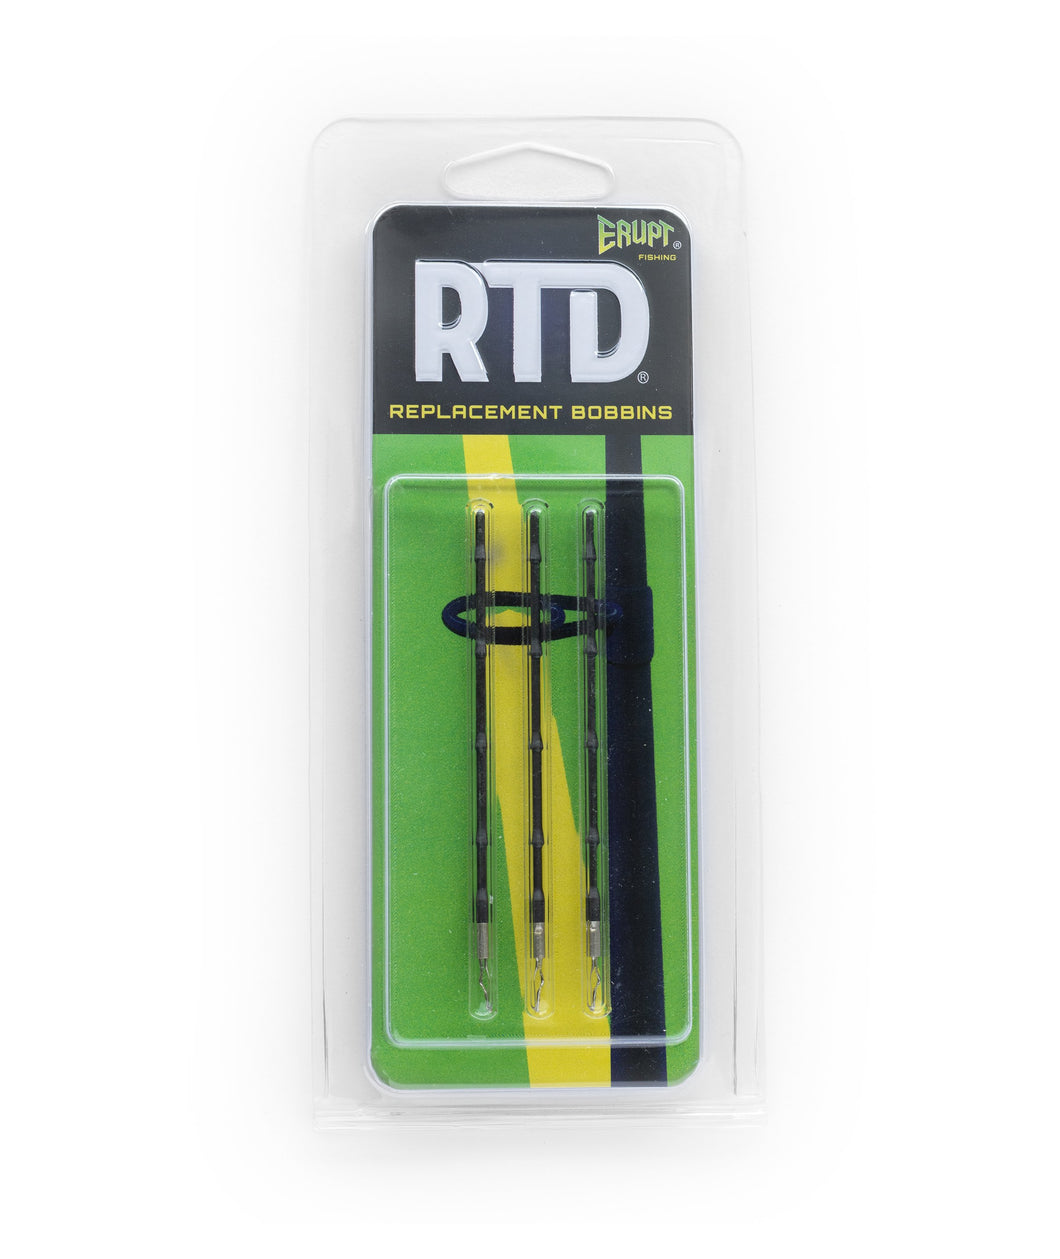 RTD Replacement Bobbins